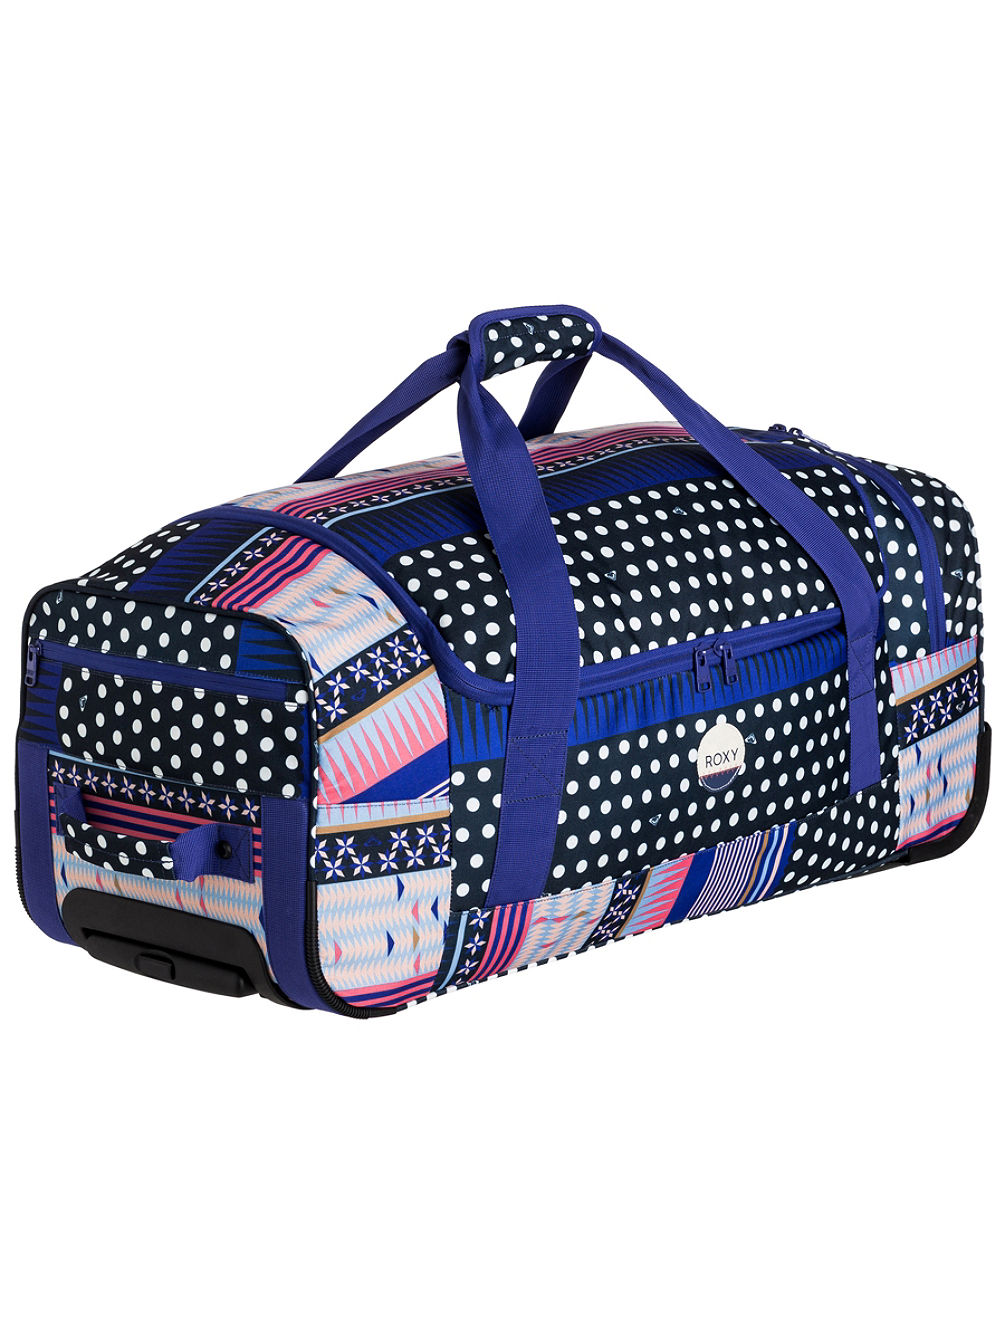 Buy Roxy Distance Accross Travelbag online at blue-tomato.com 7f5f0d2db5792